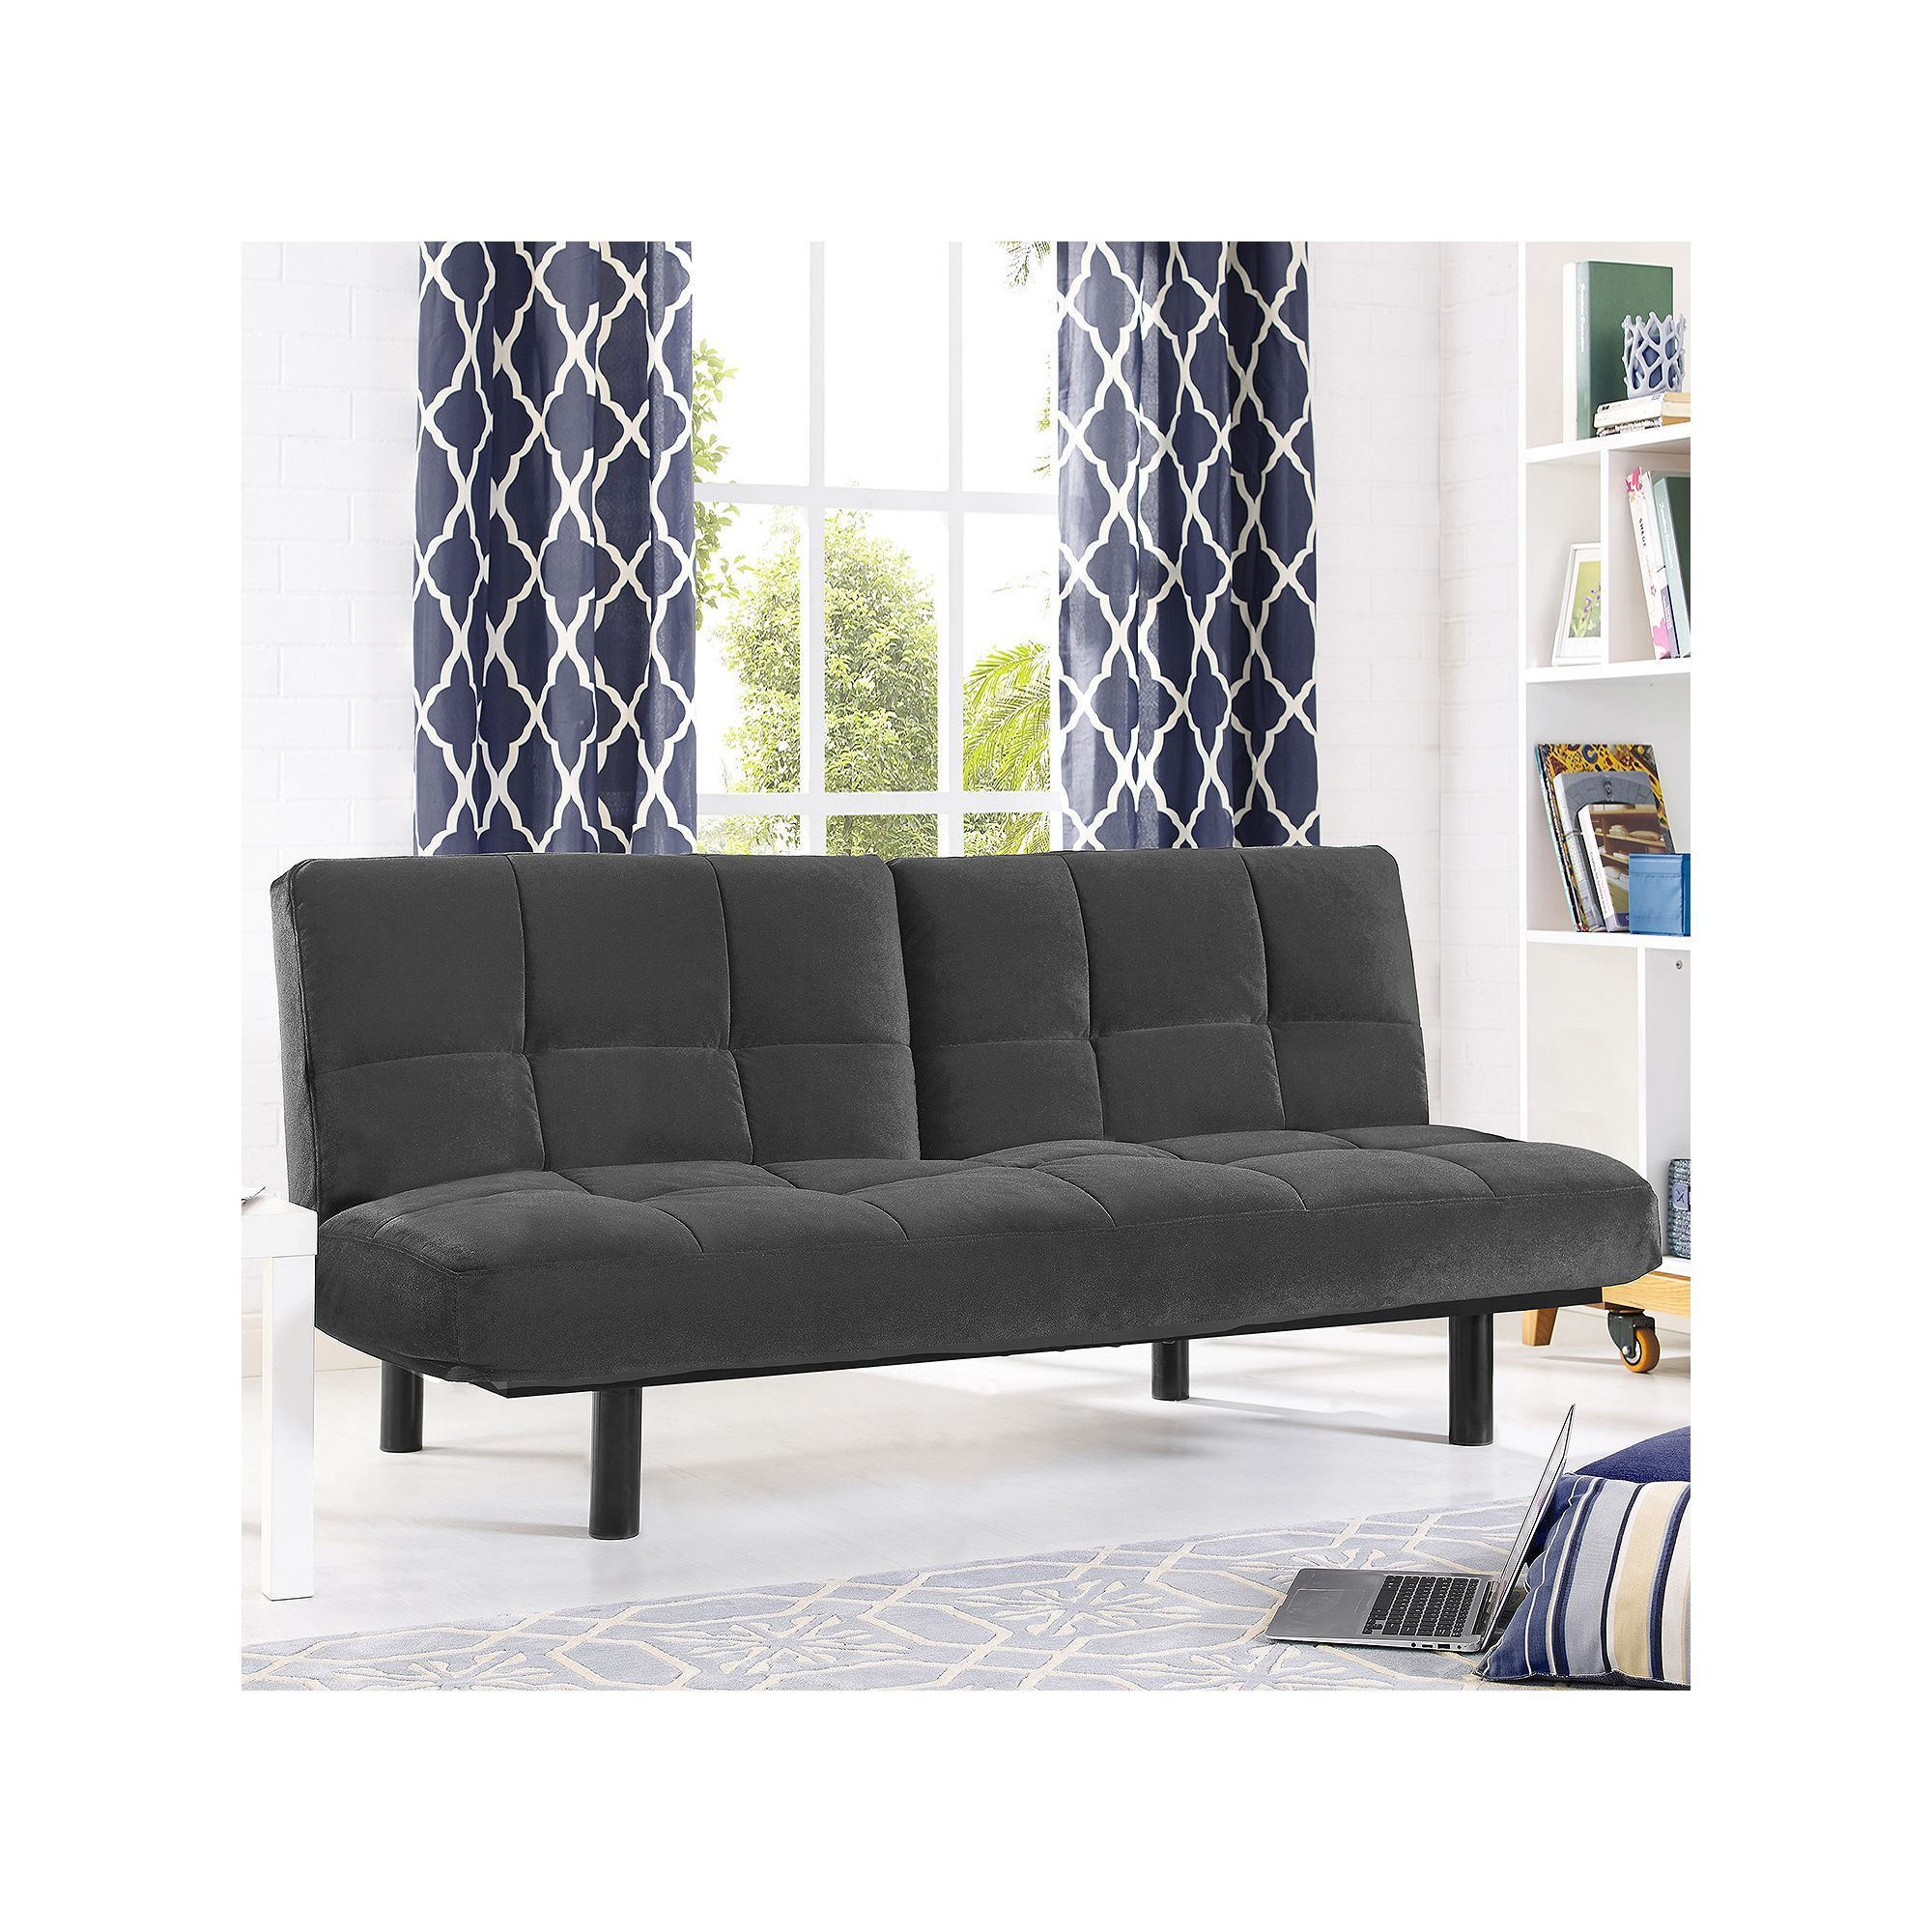 Serta Khloe Convertible Futon Sofa Bed Blue Navy